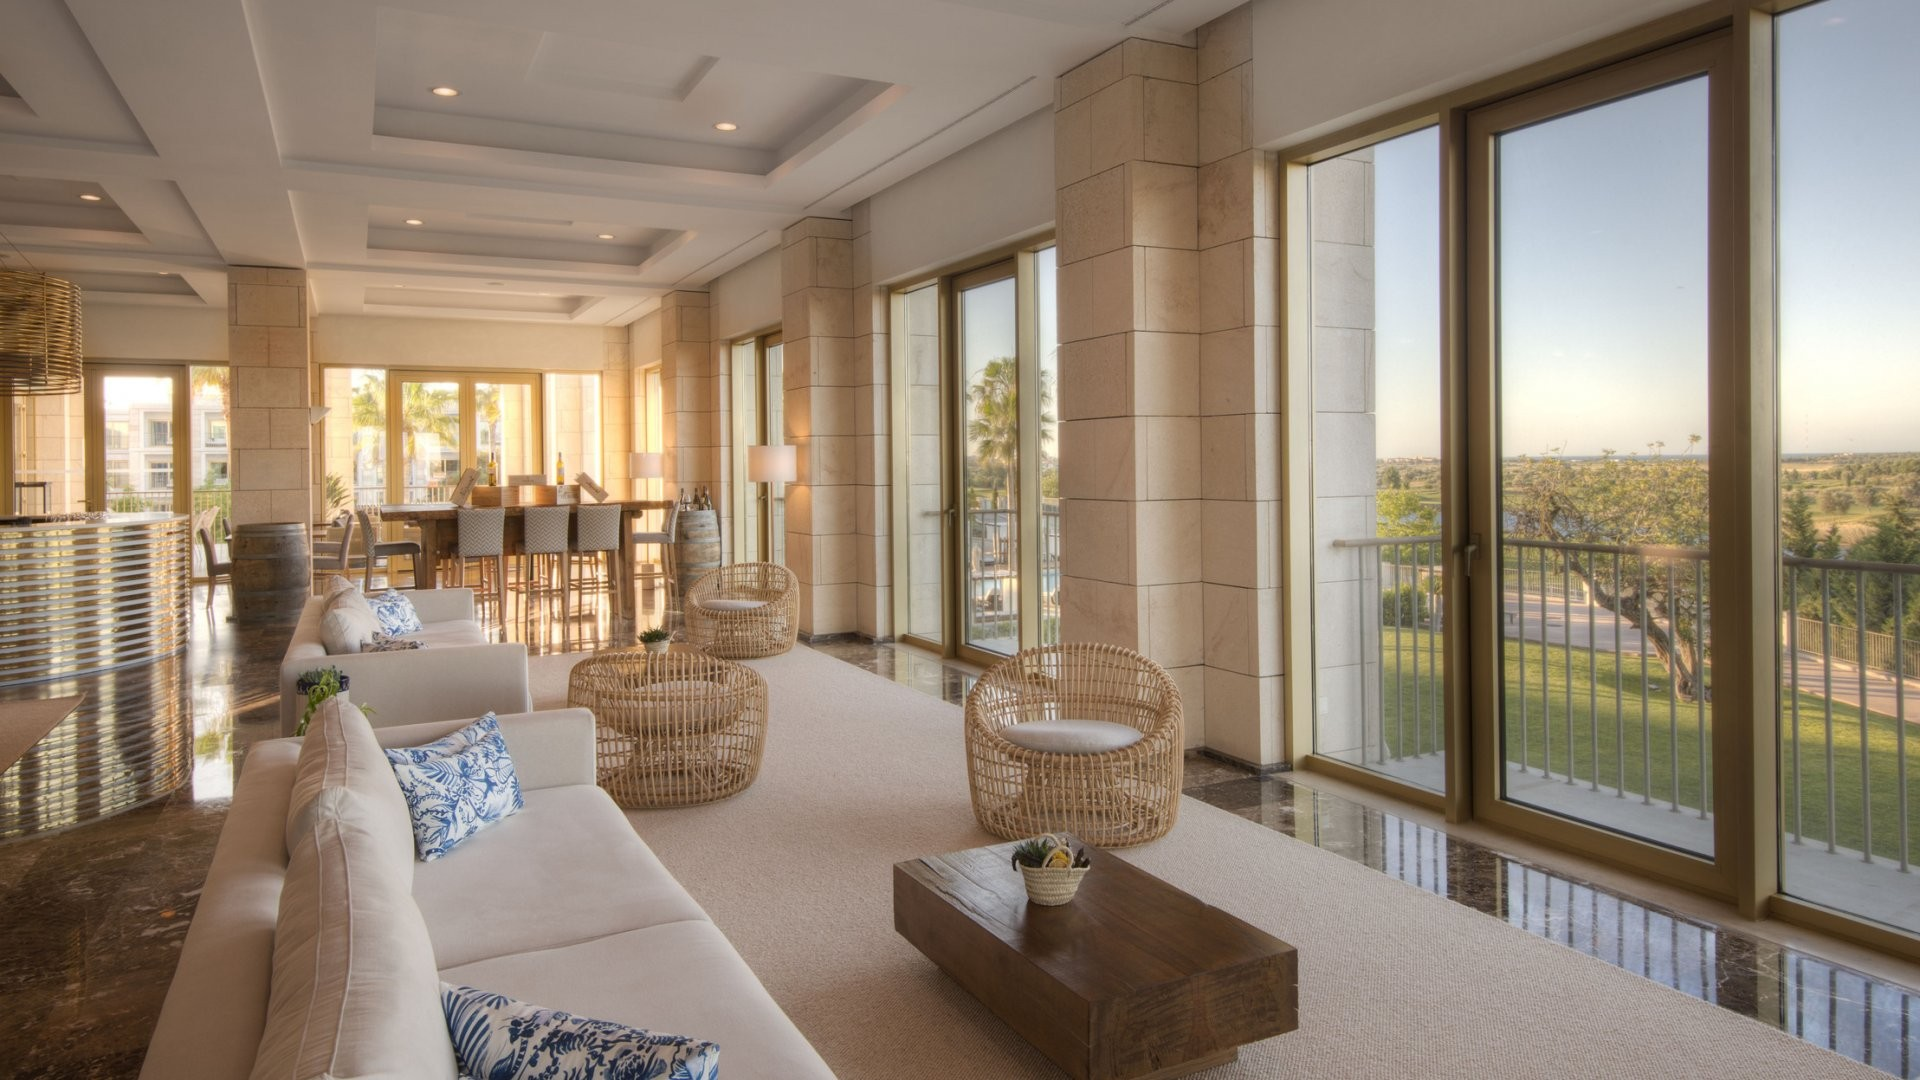 Anantara Vilamoura anantara spa Anantara SPA is one of the most luxurious spas in the world Anantara Vilamoura 1